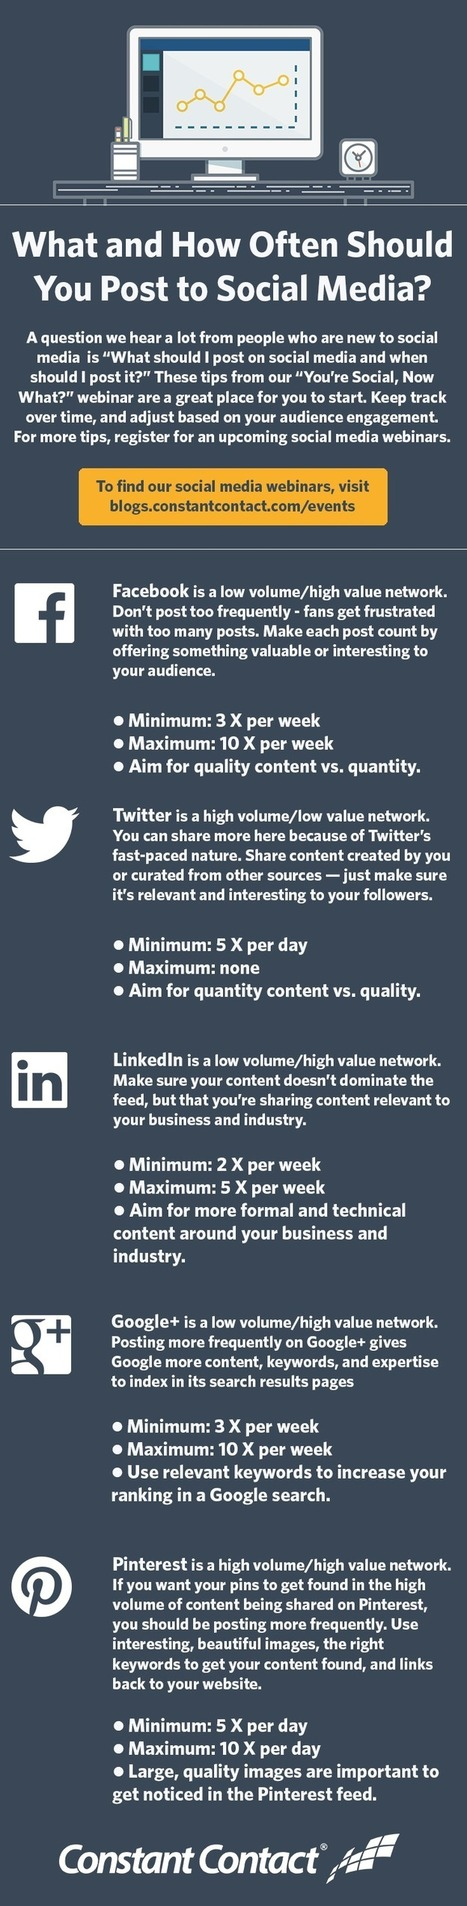 [Cheat Sheet] What and How Often Should You Post on Social Media? | MarketingHits | Scoop.it